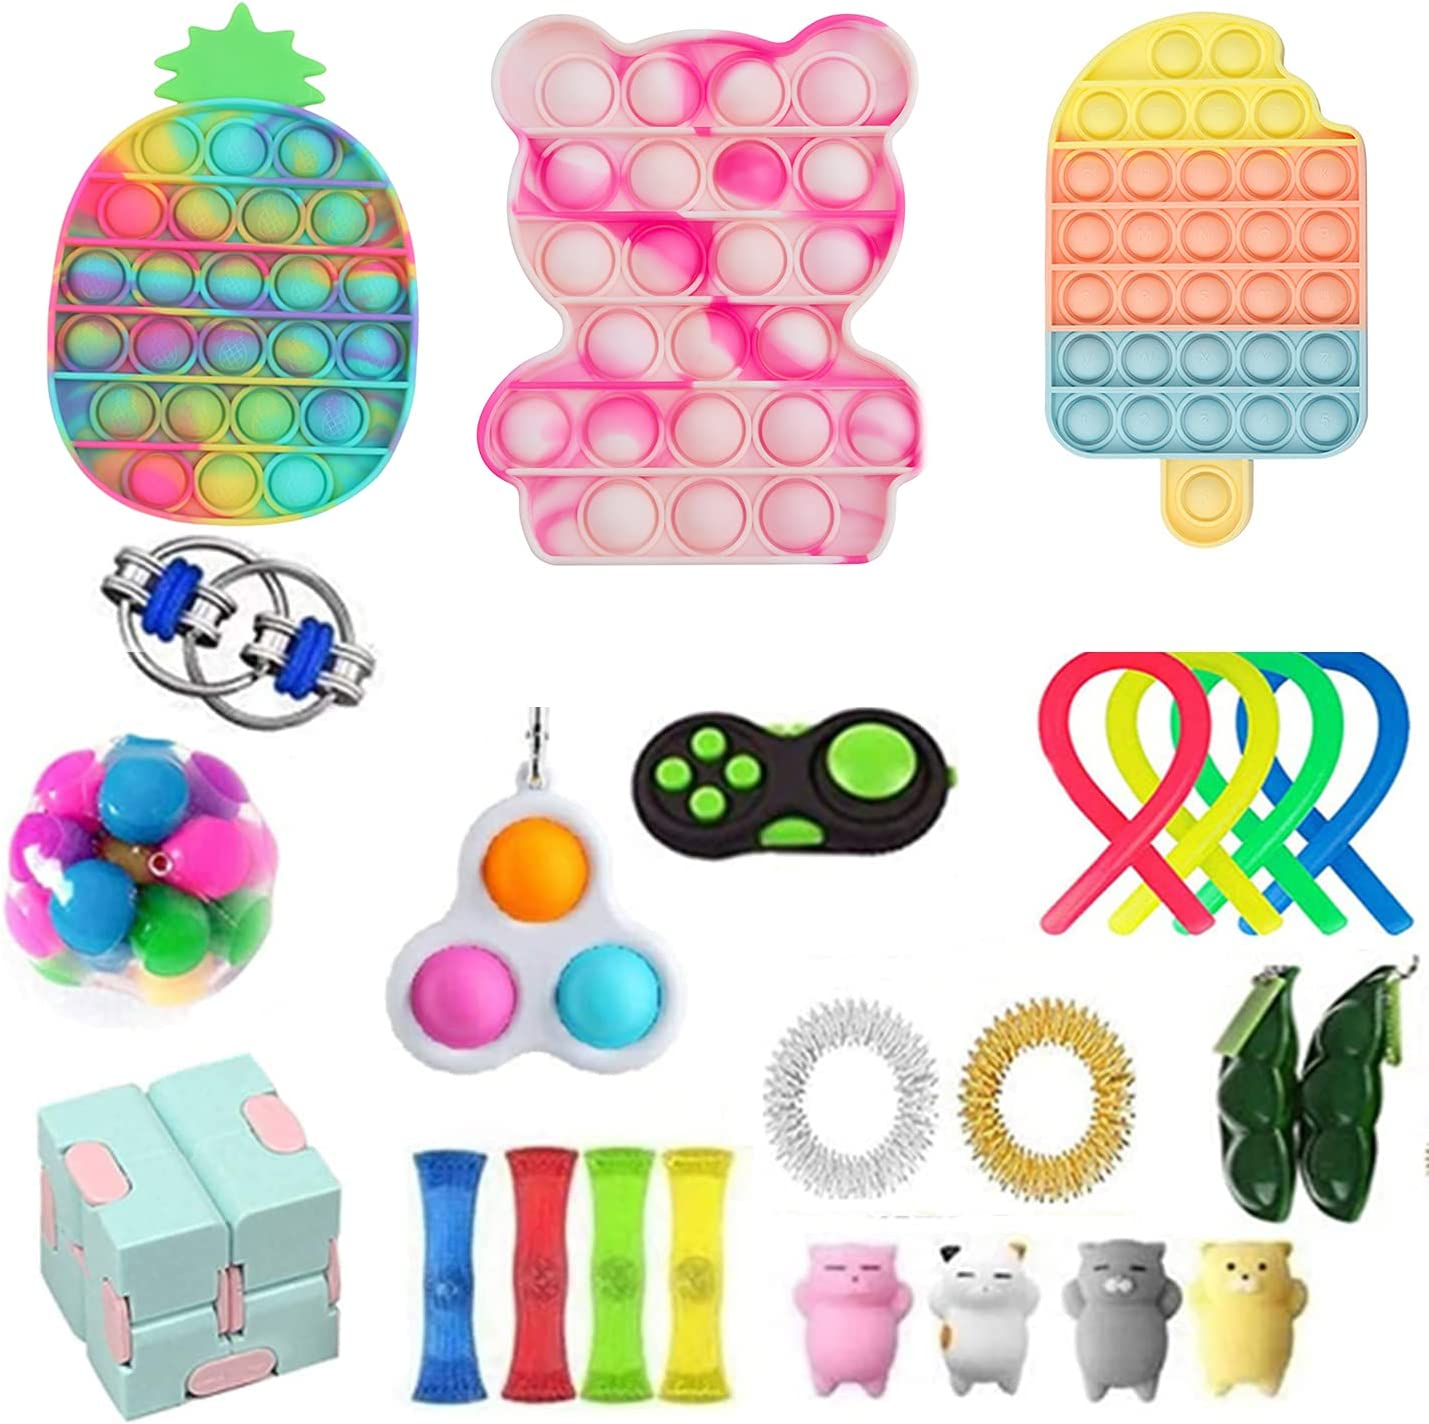 Fidget Toy Pack Direct store Cheap Sensory online shopping Stress Relief Toys Se